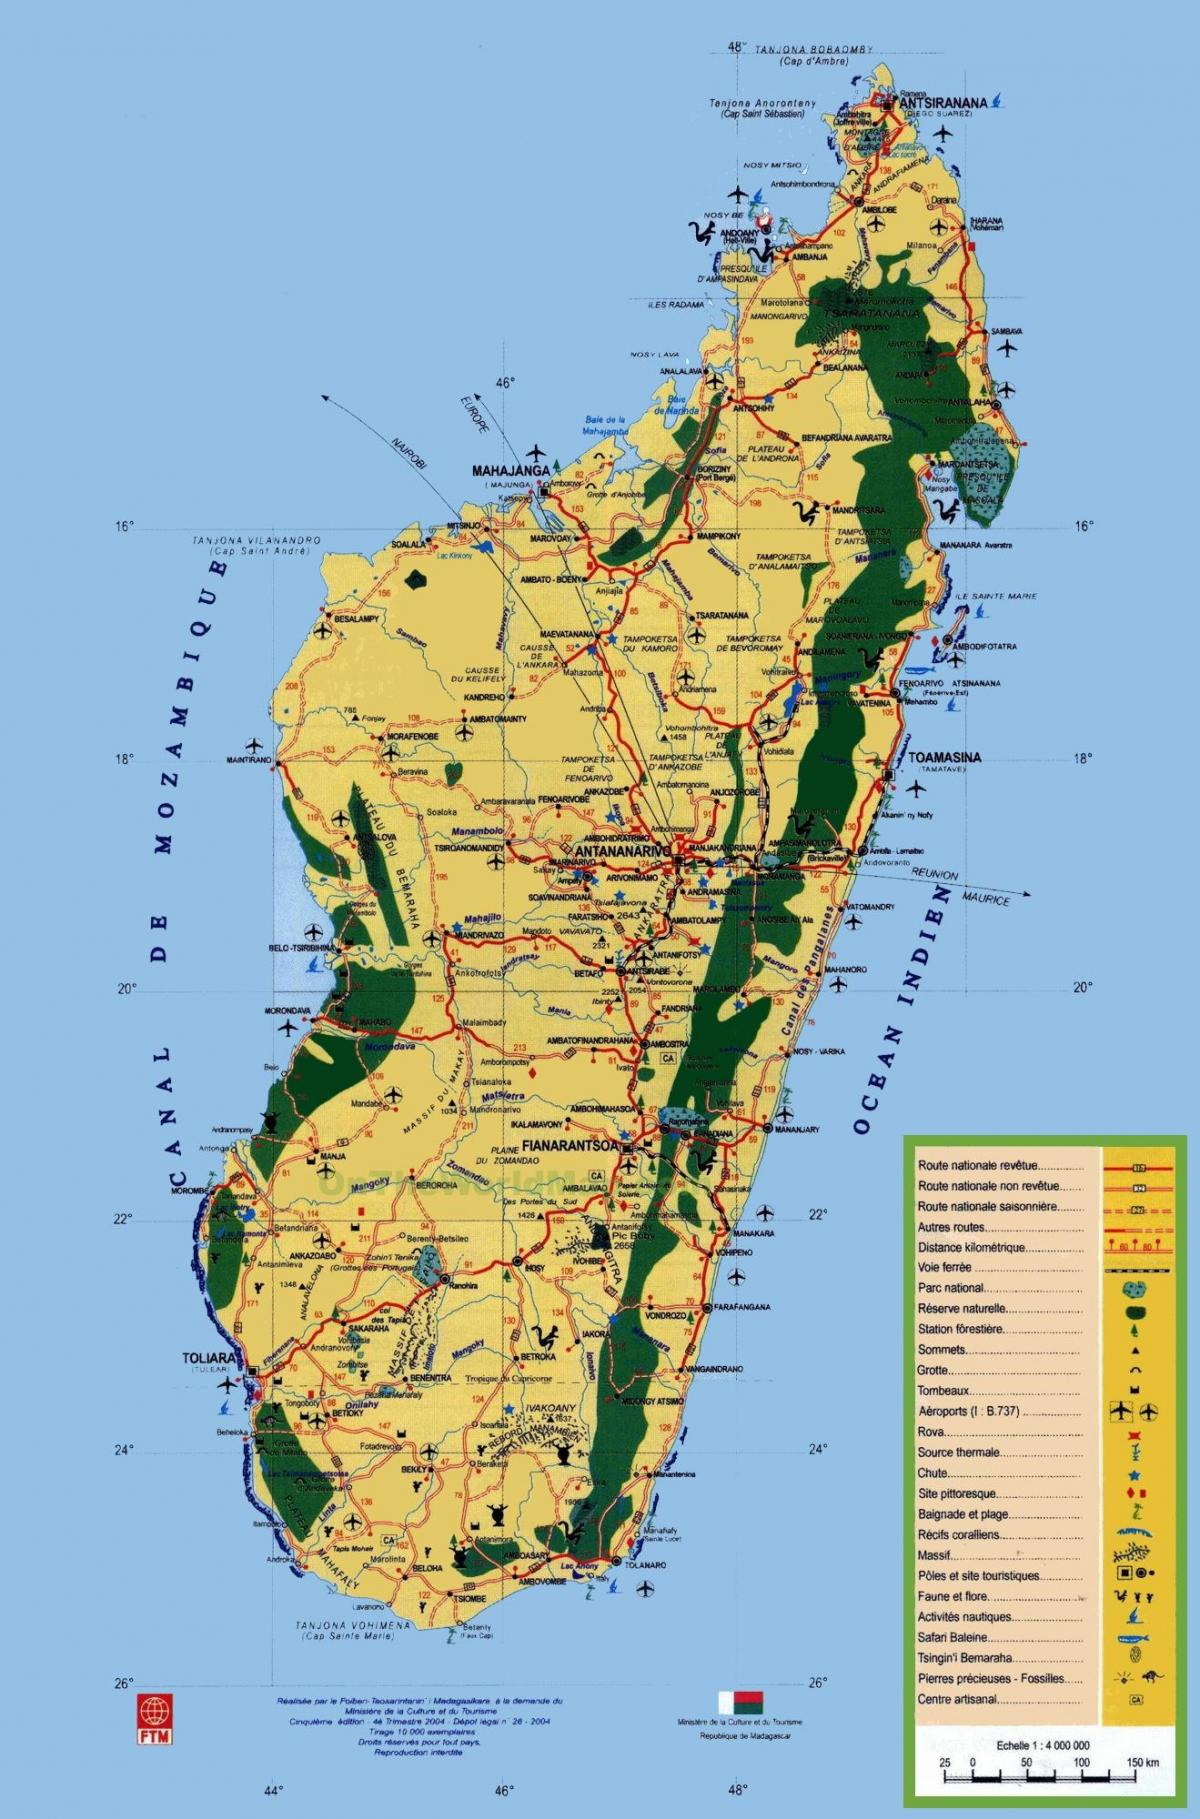 Madagascar tourist attractions map